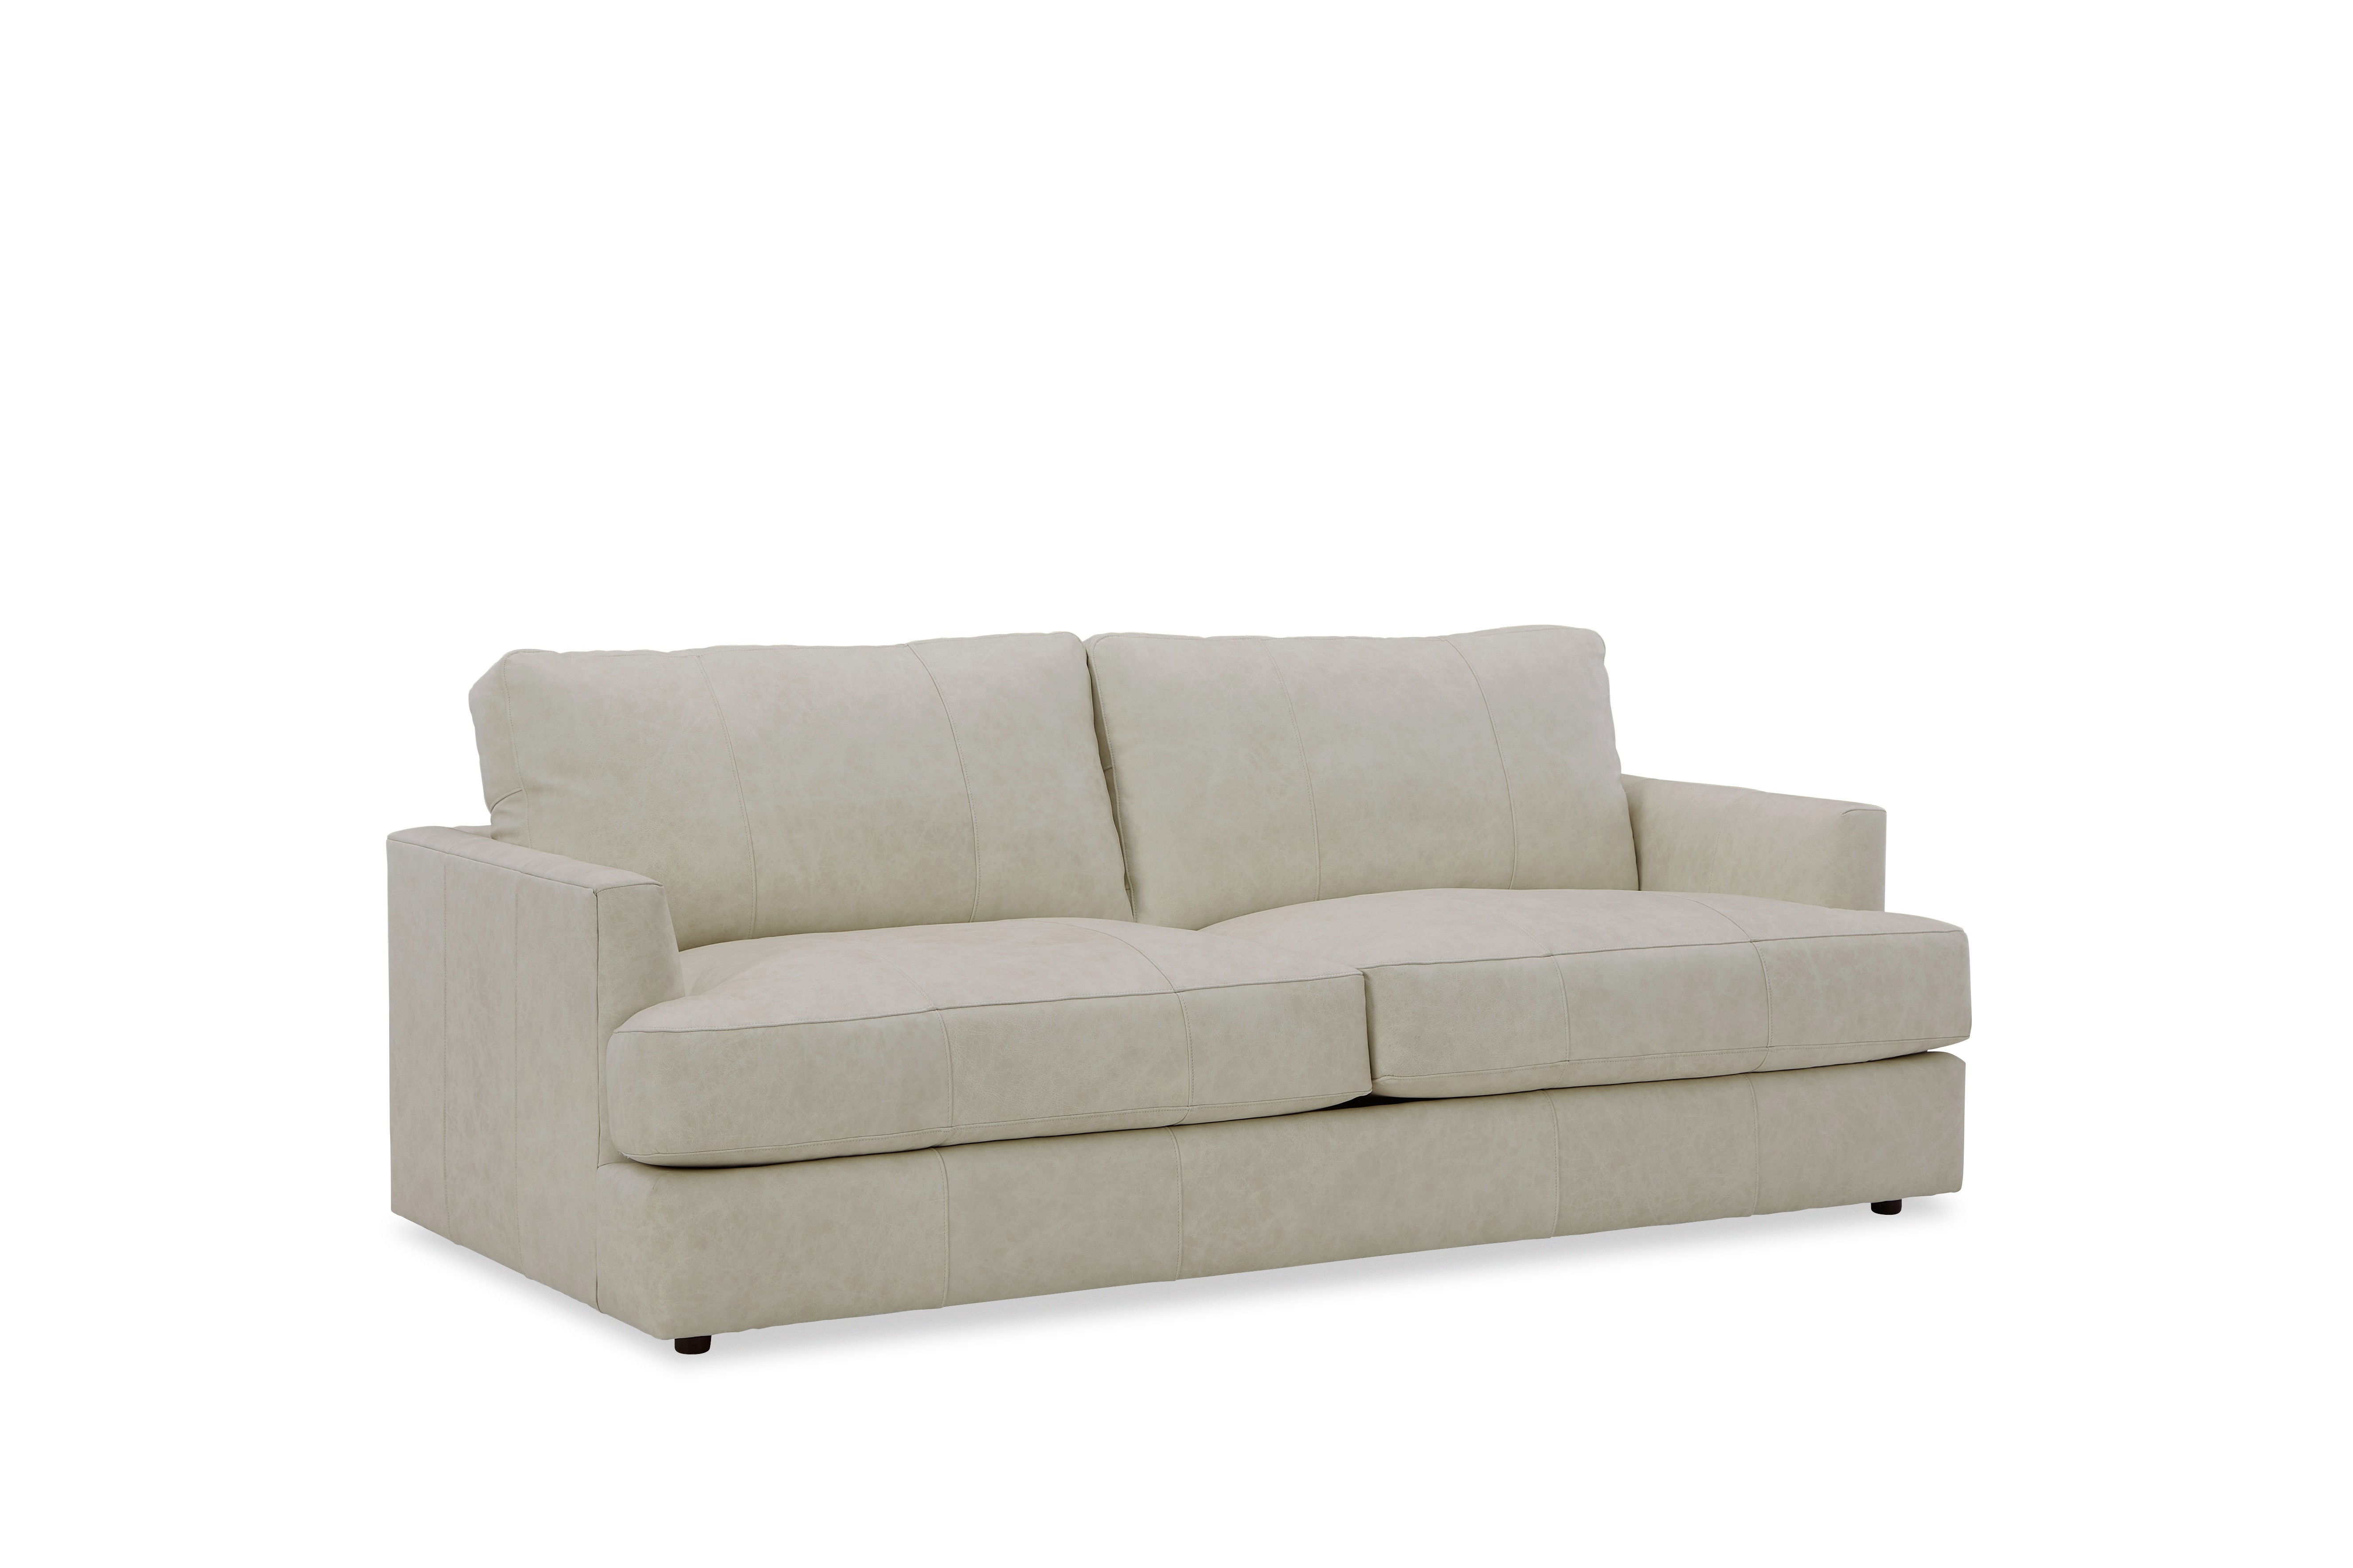 L700150BD Sofa by Craftmaster at Prime Brothers Furniture